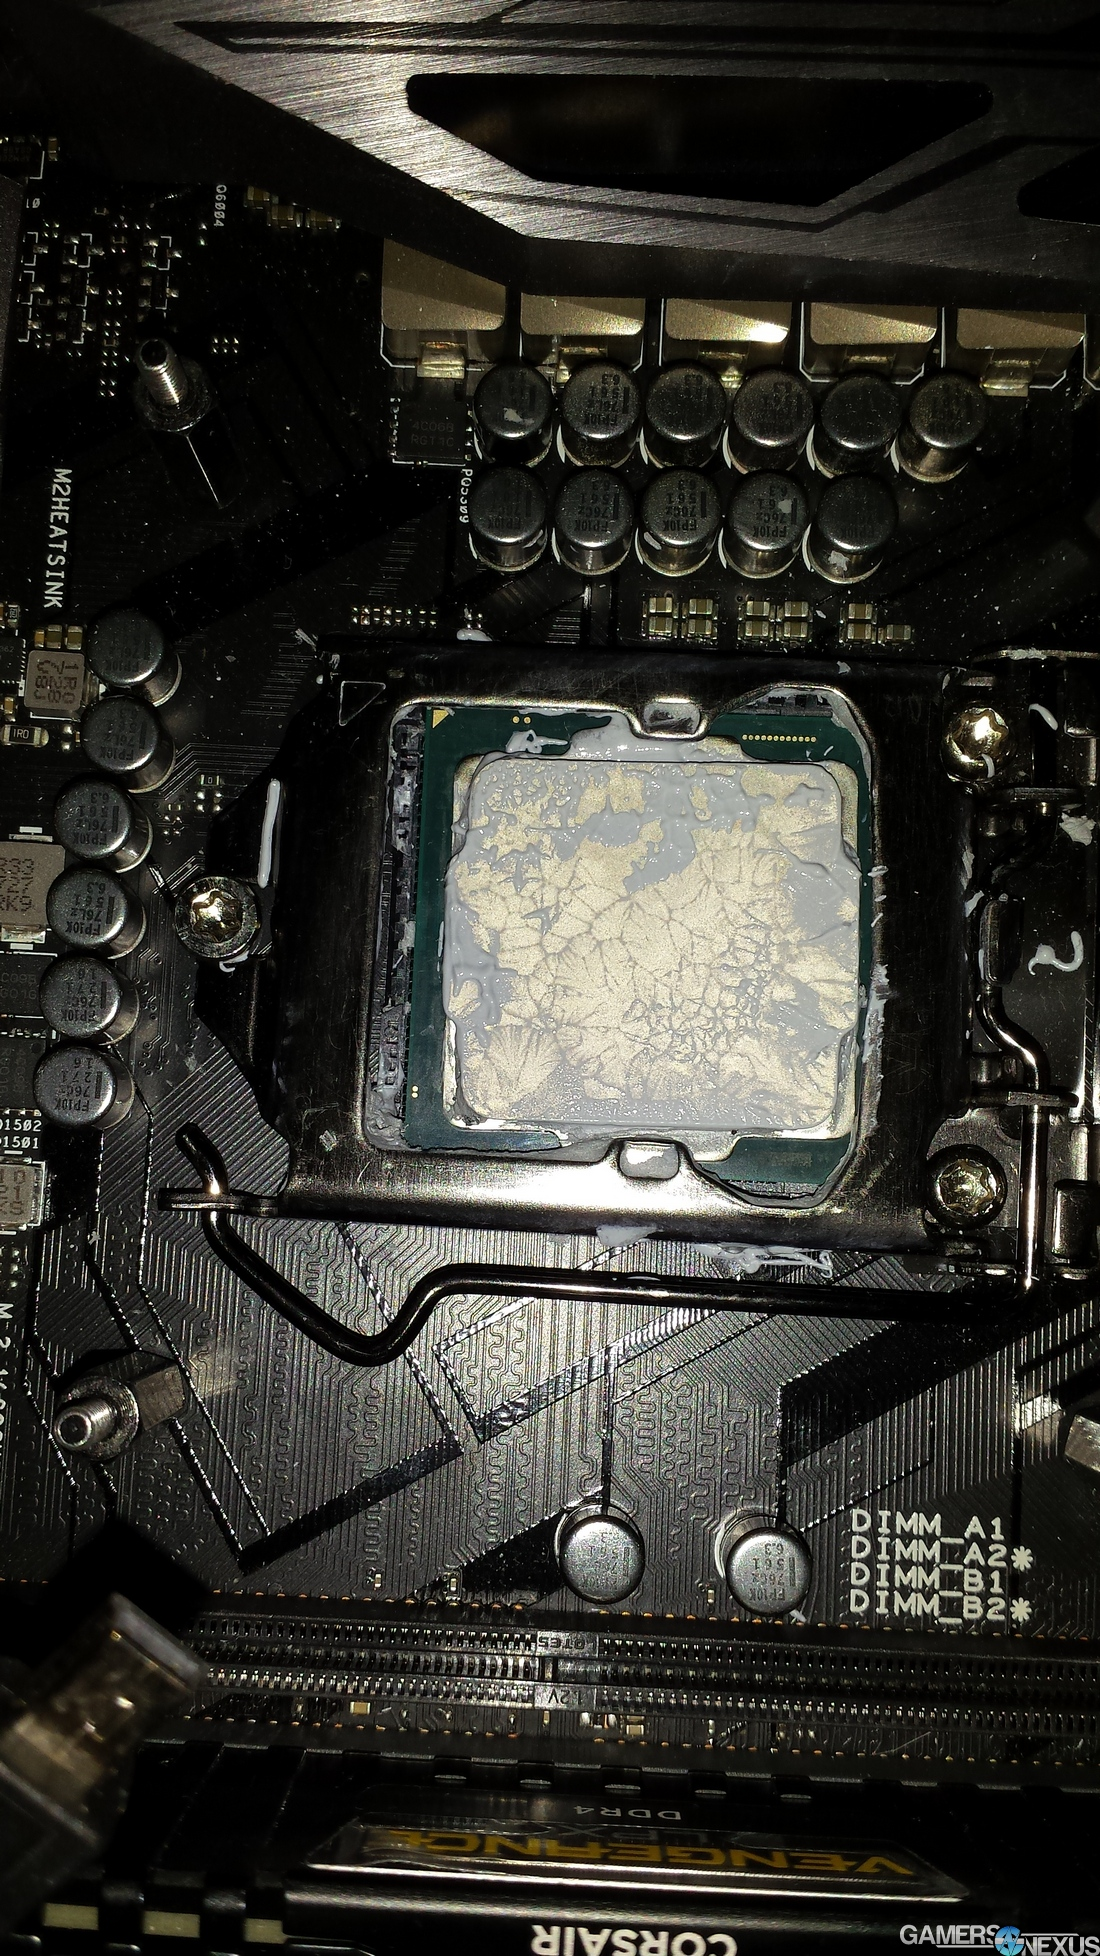 too much thermal paste